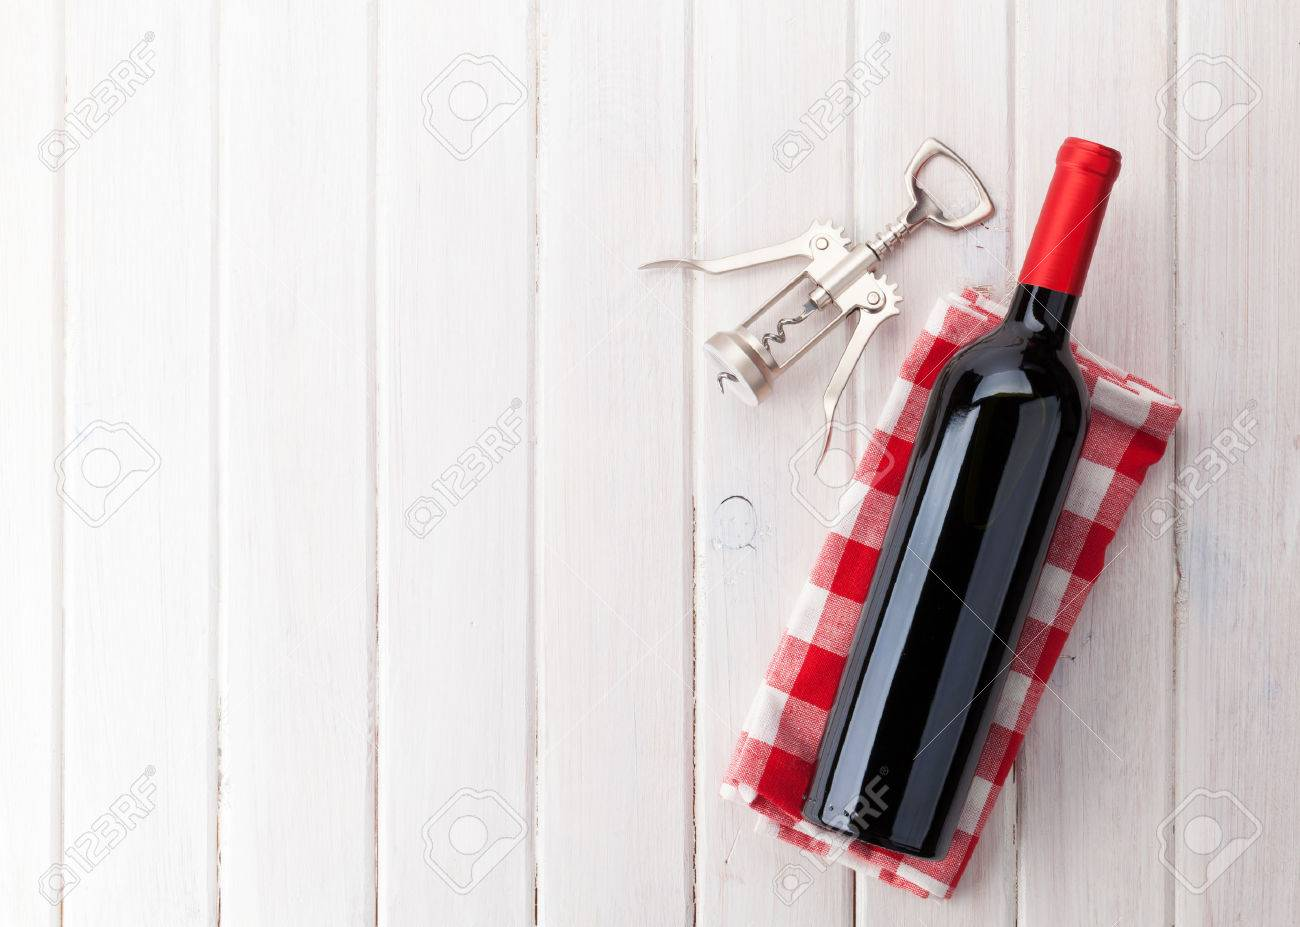 Red Wine Bottle And Corkscrew On White Wooden Table Background With Copy  Space Stock Photo